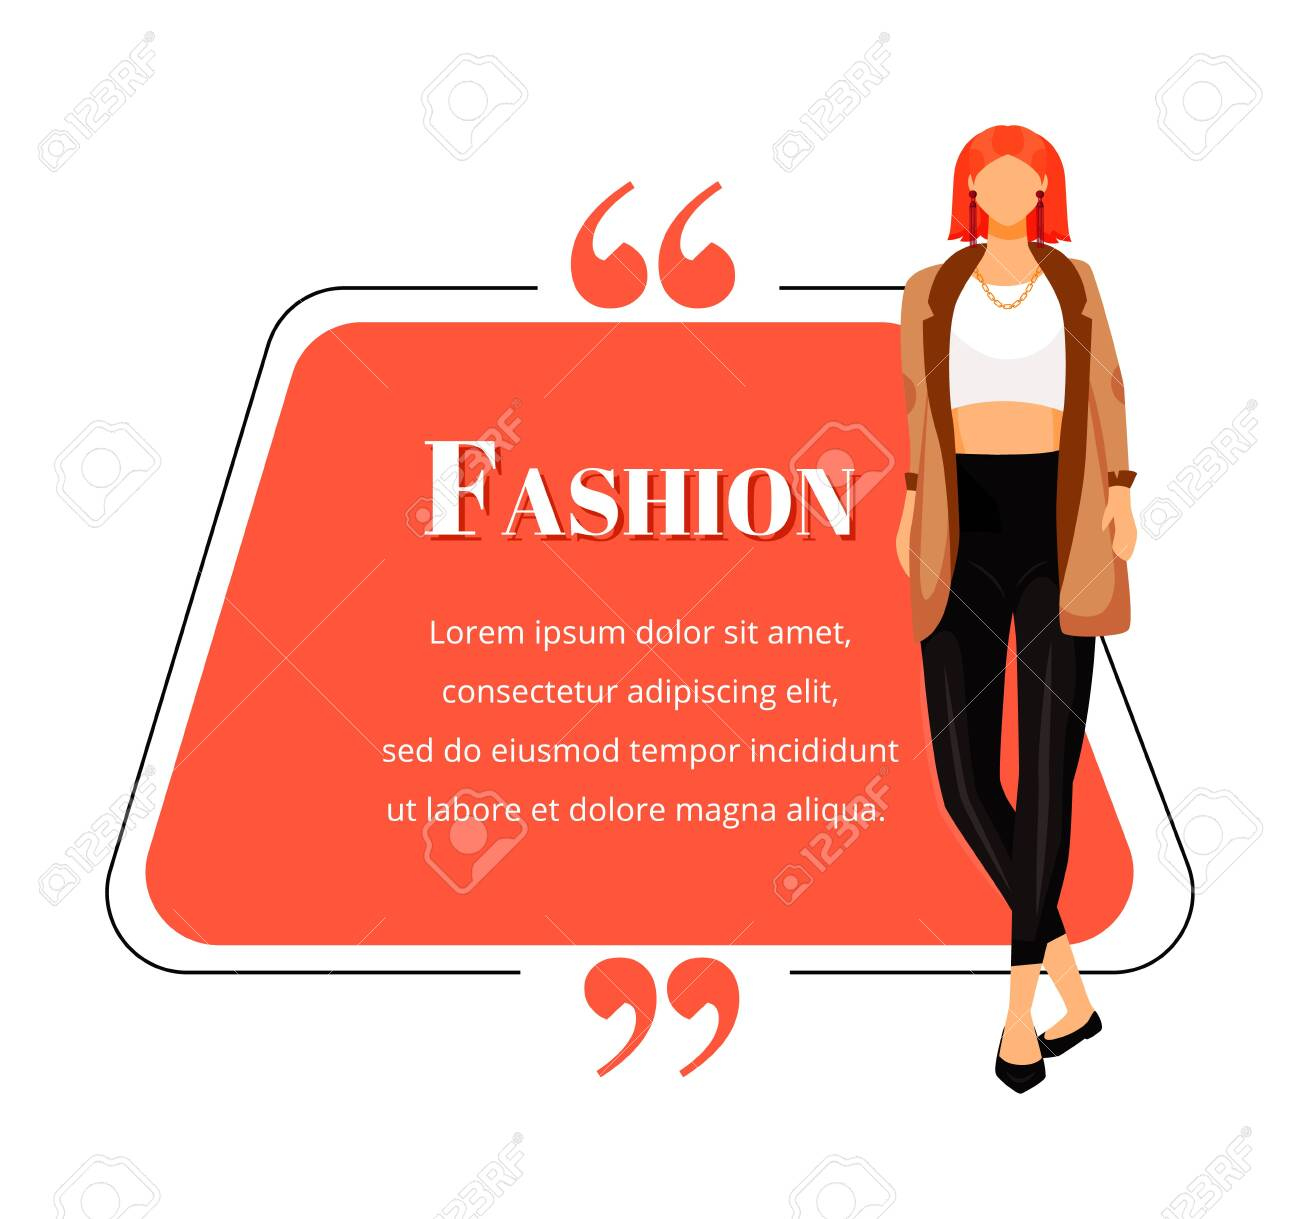 Fashion Designer Flat Color Vector Character Quote Successful Royalty Free Cliparts Vectors And Stock Illustration Image 137934849